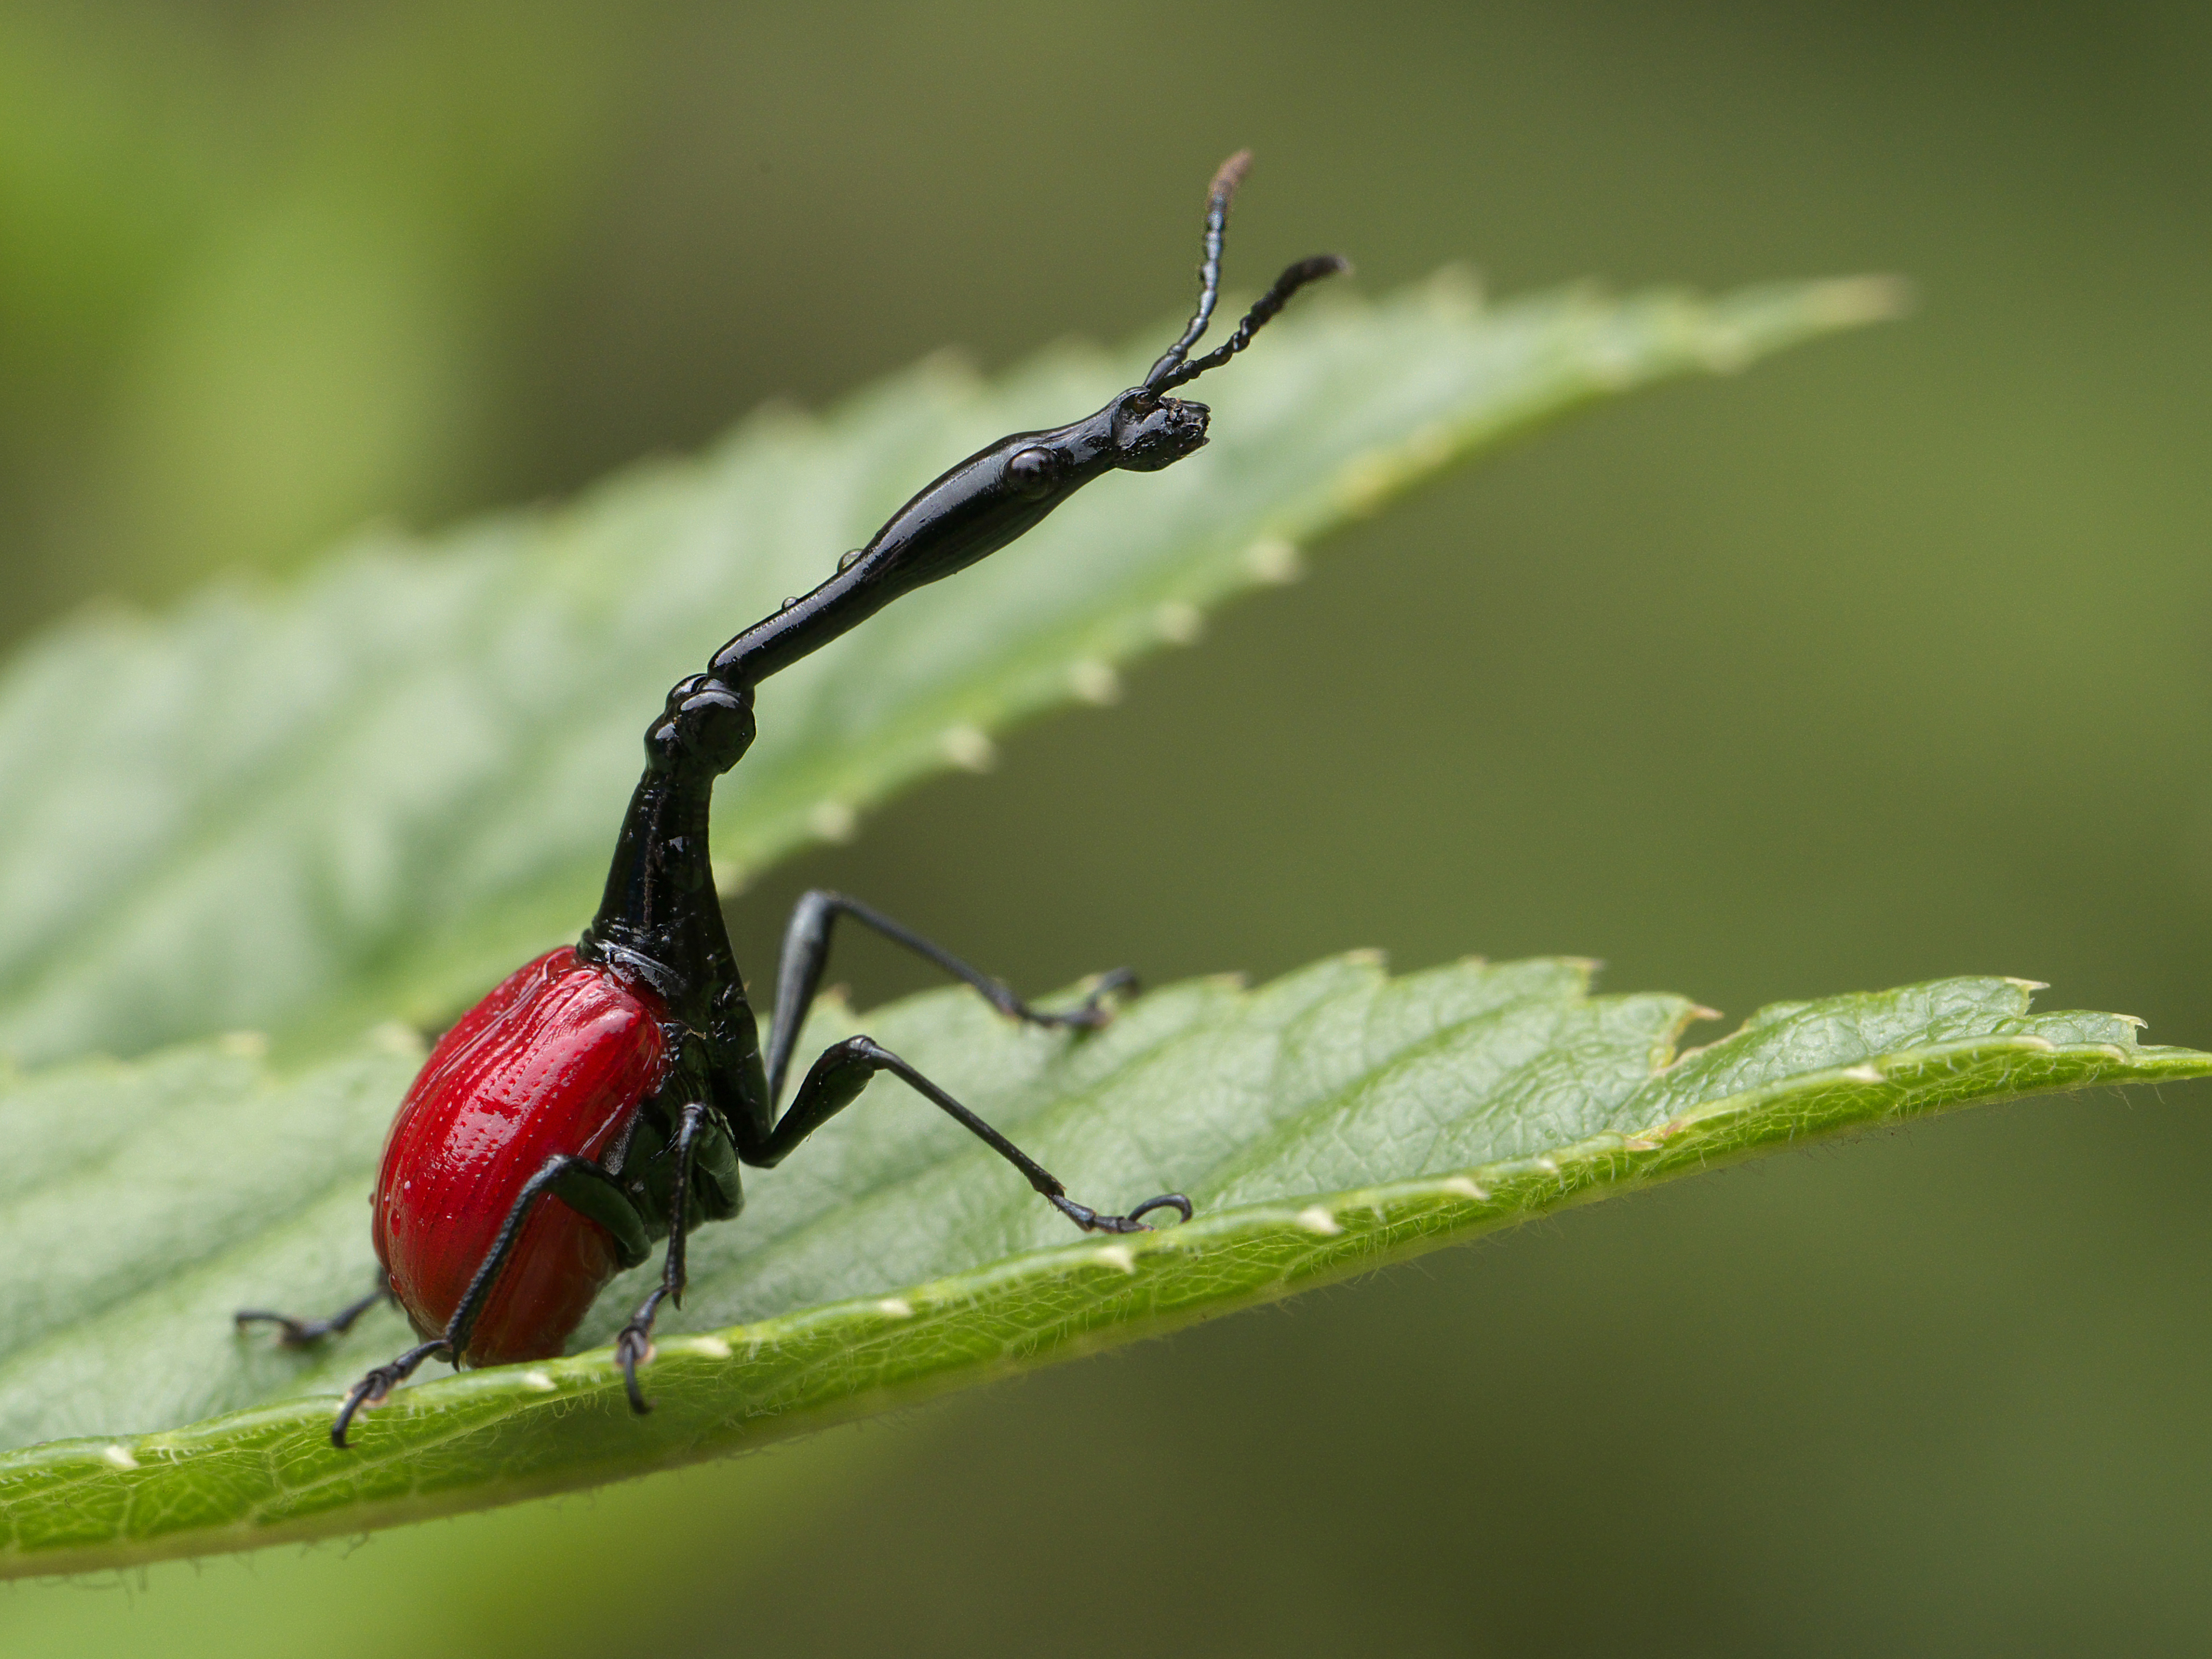 The giraffe necked weevil spends their entire lives on a tree known as the 'giraffe beetle tree' that serves them with food and shelter.